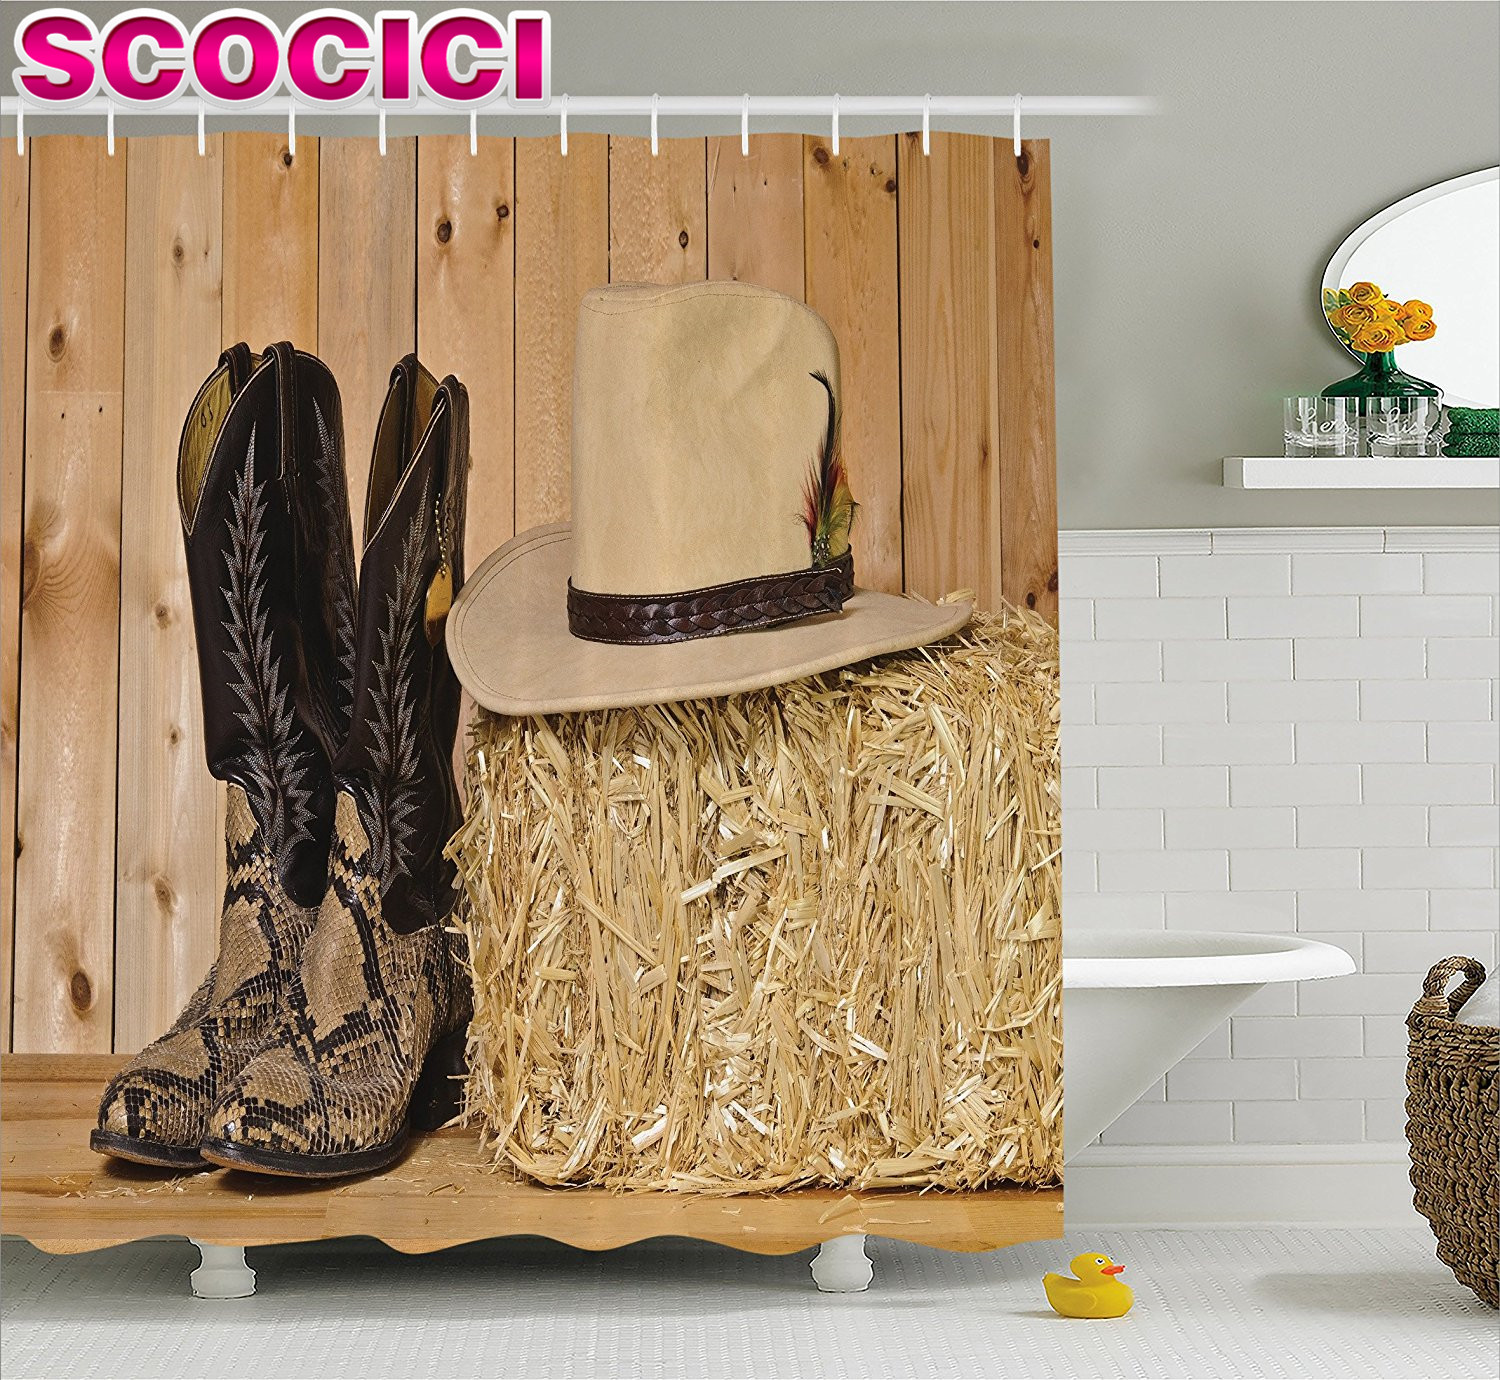 Cowboy bathroom decor - Western Decor Shower Curtain Snake Skin Cowboy Boots Timber Planks In Barn With Hay Old West